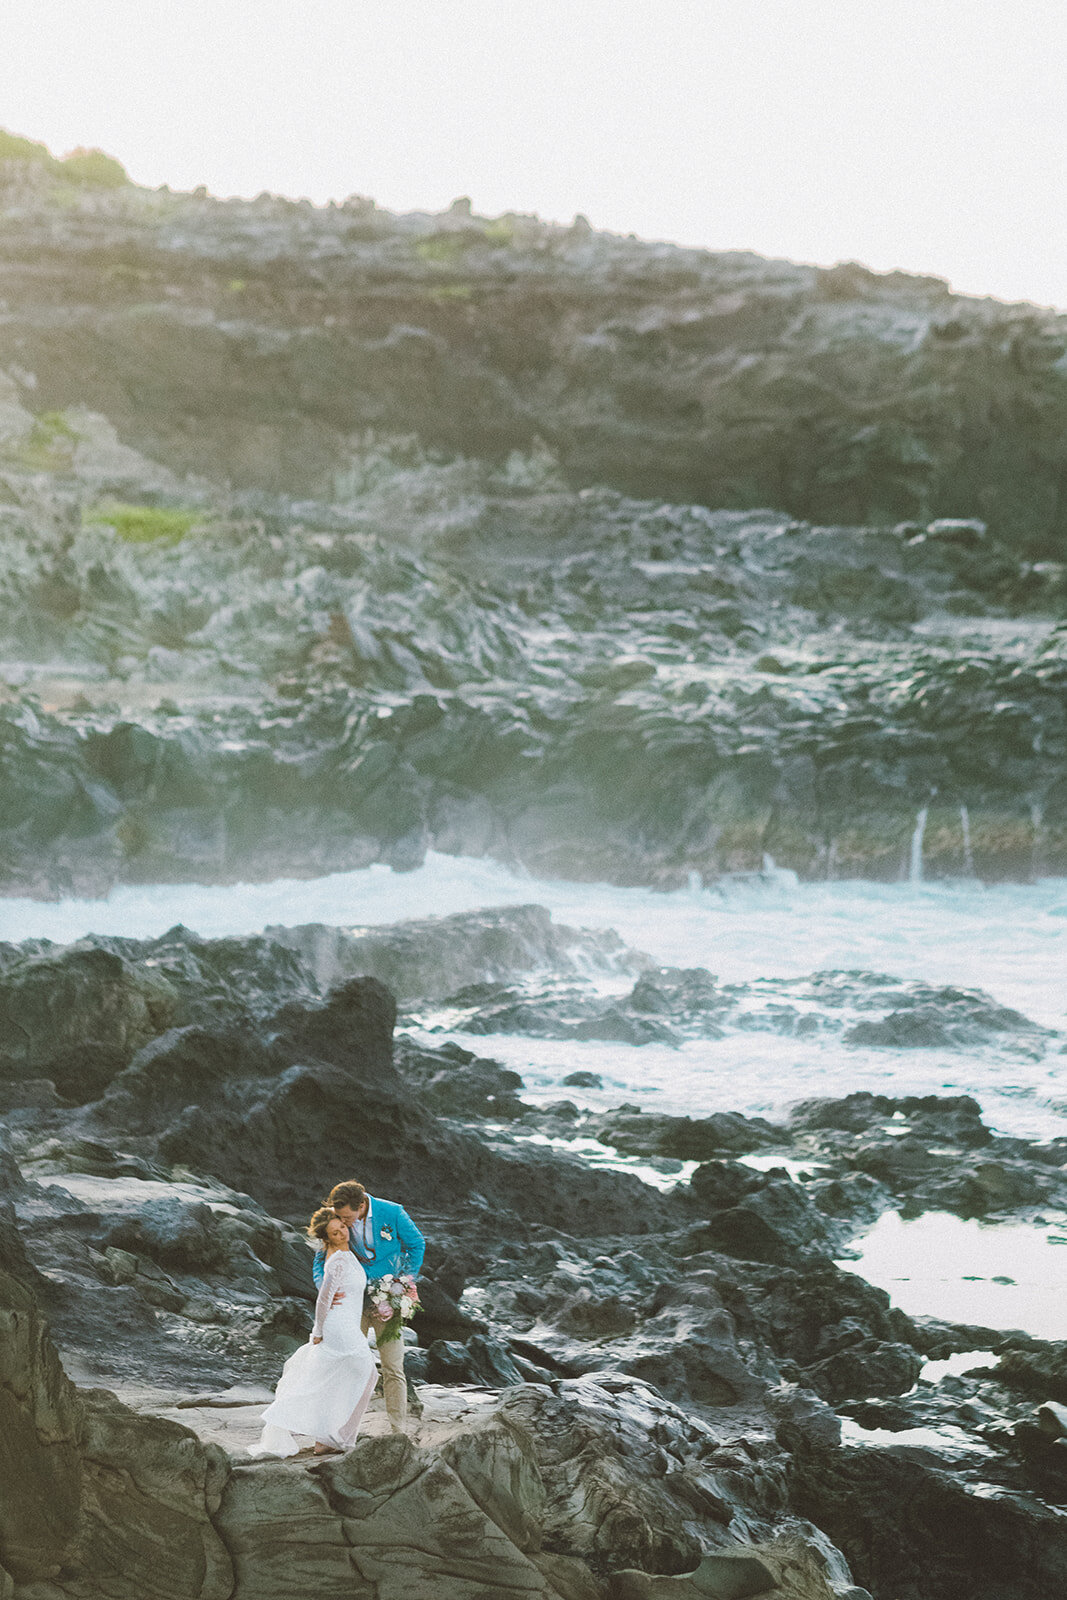 Maui wedding photographer20181126_0091.jpg